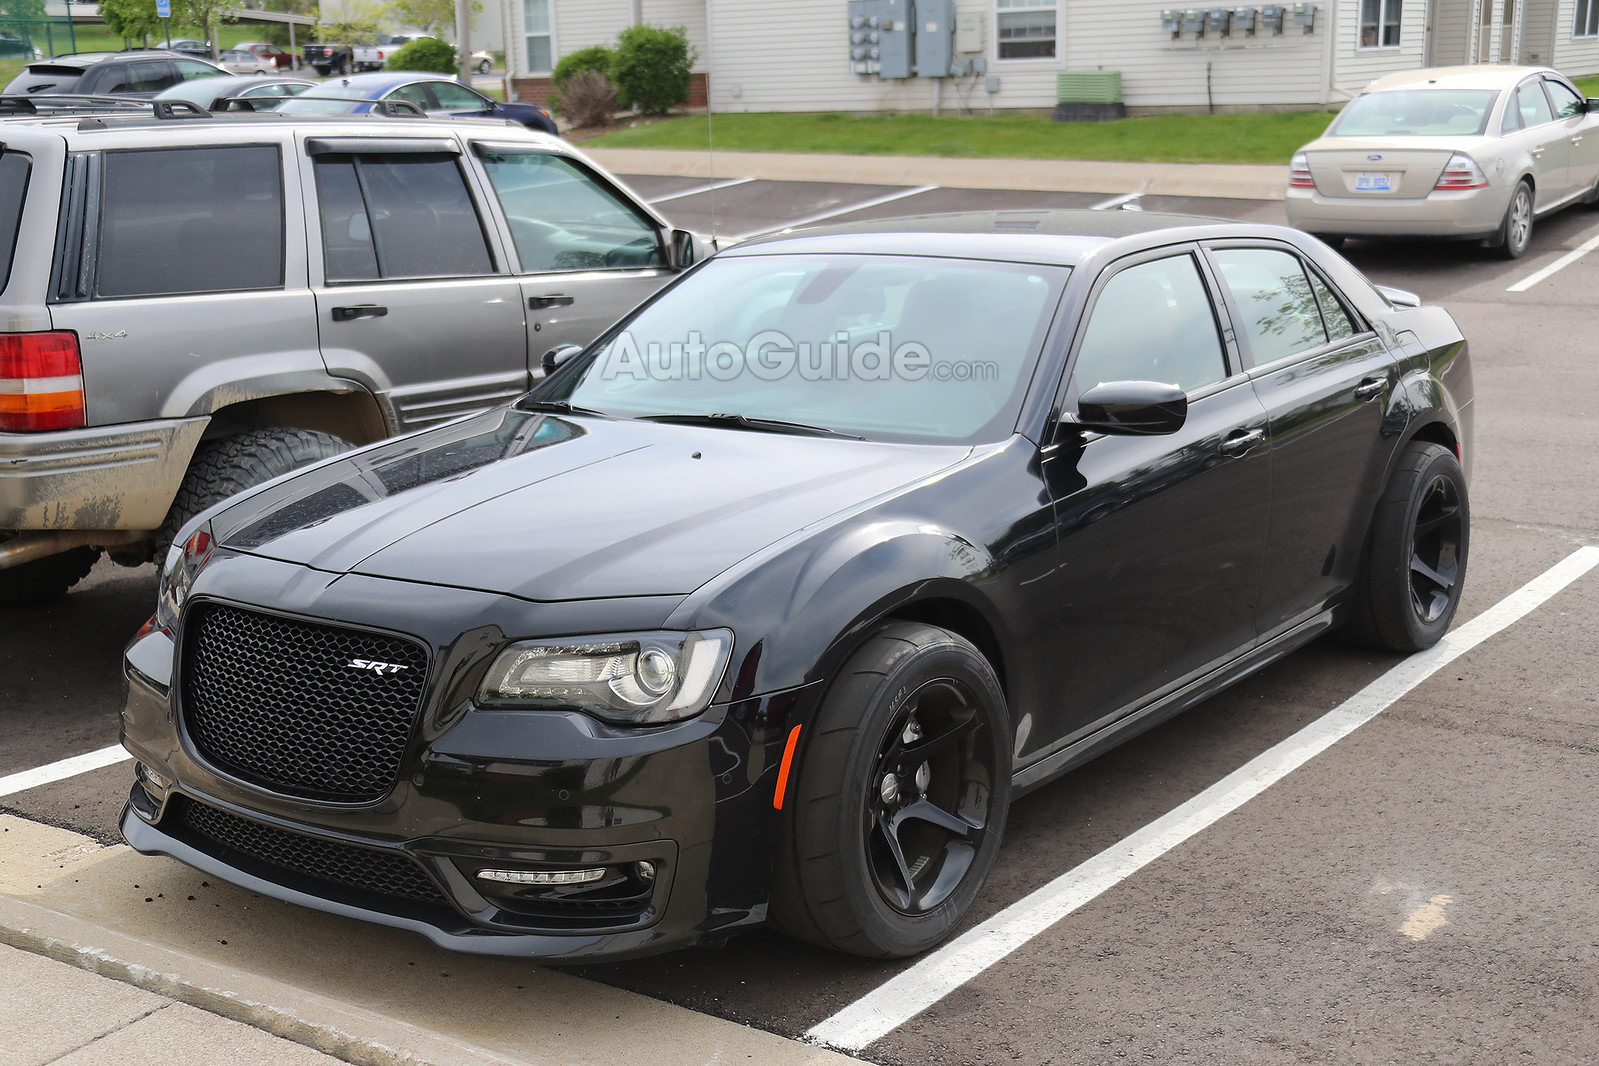 chrysler 300 srt hellcat spy shots srtlife. Black Bedroom Furniture Sets. Home Design Ideas